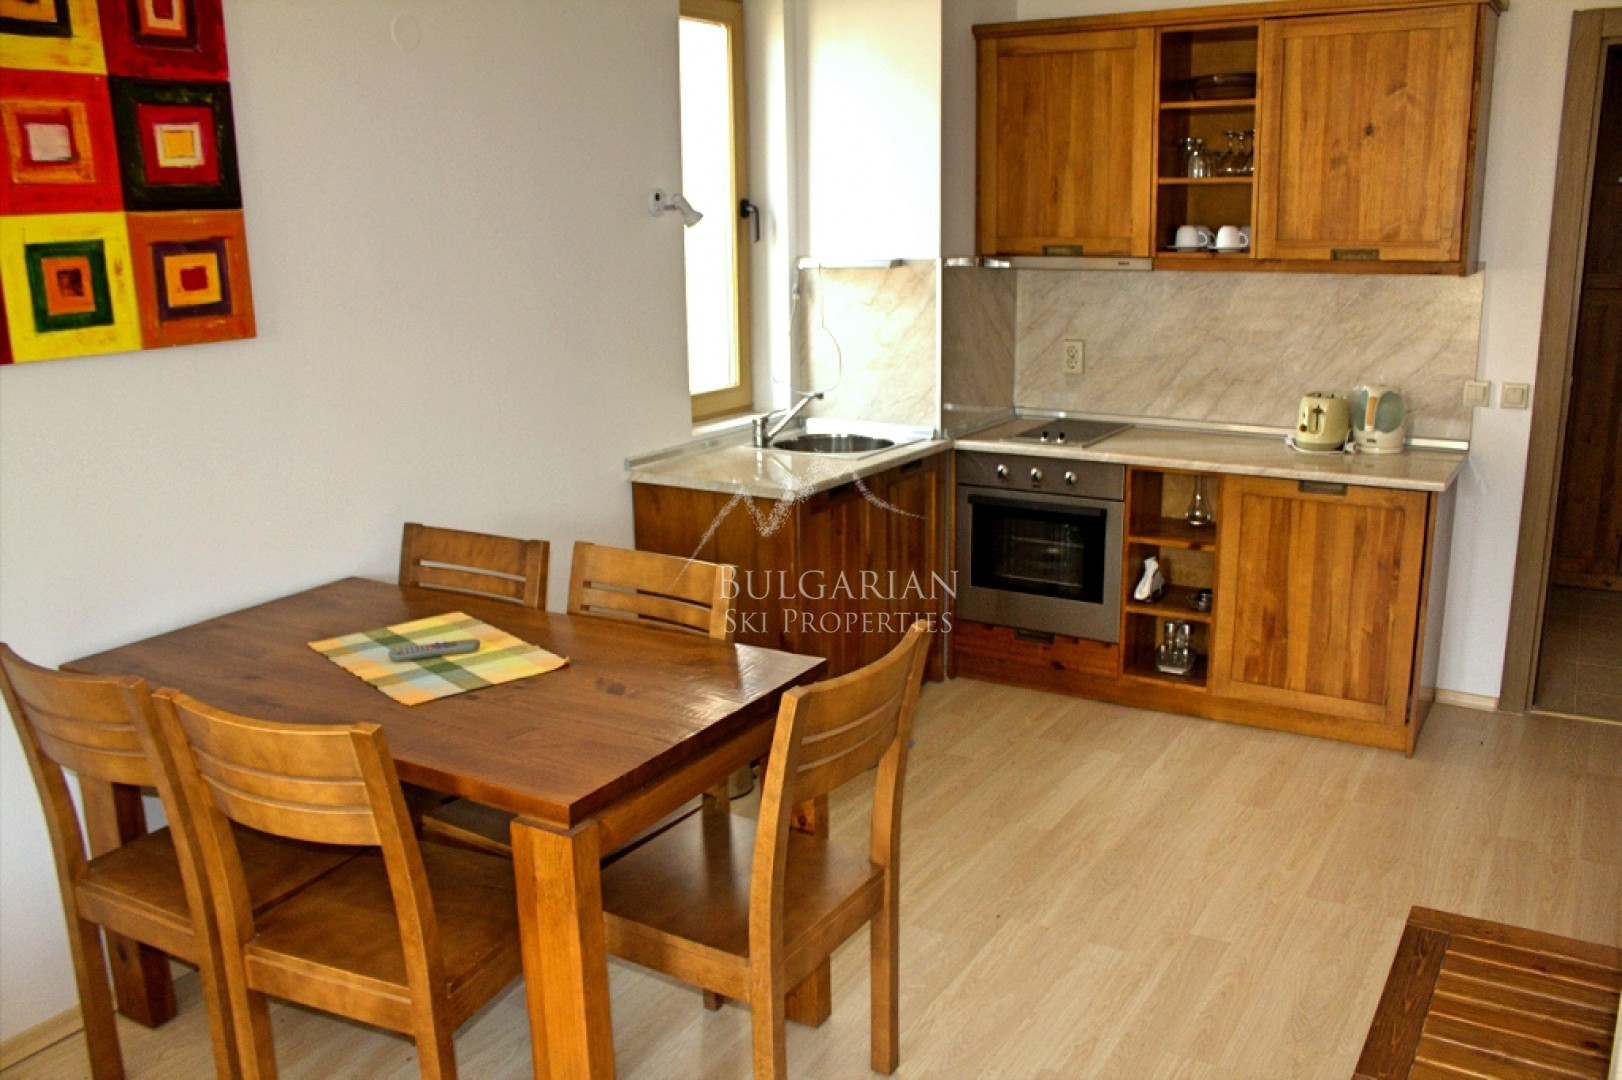 Bansko, St. John Hill: Specious two bedroom apartment with mountain views for sale